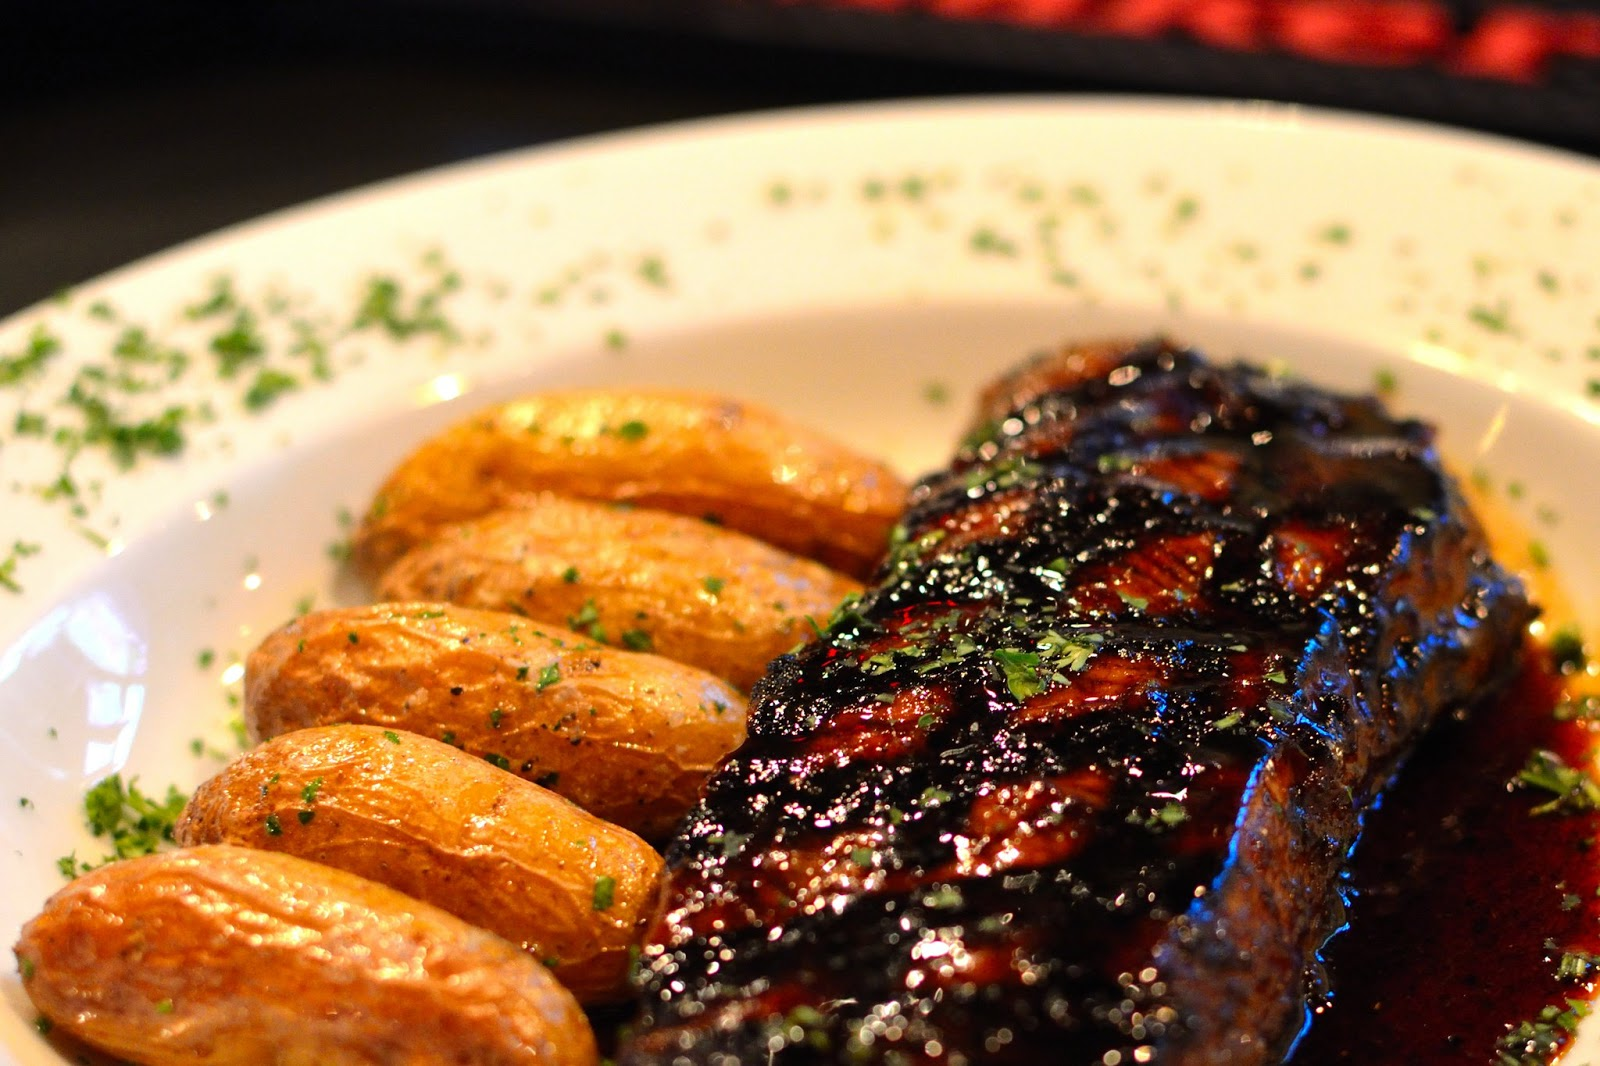 delicious steak and potatoes dish from Gallo's